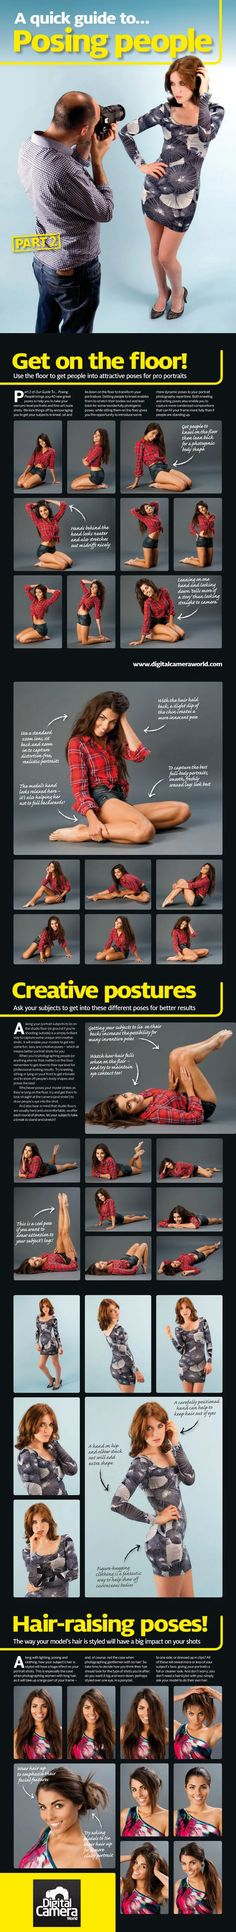 Free portrait posing guide: 40 different ideas for poses, postures and hairstyles. Great for Senior pictures. Poses Photo, Picture Poses, Photo Tips, Photo Shoots, Picture Outfits, Picture Ideas, Photo Ideas, Photography 101, Photography Tutorials